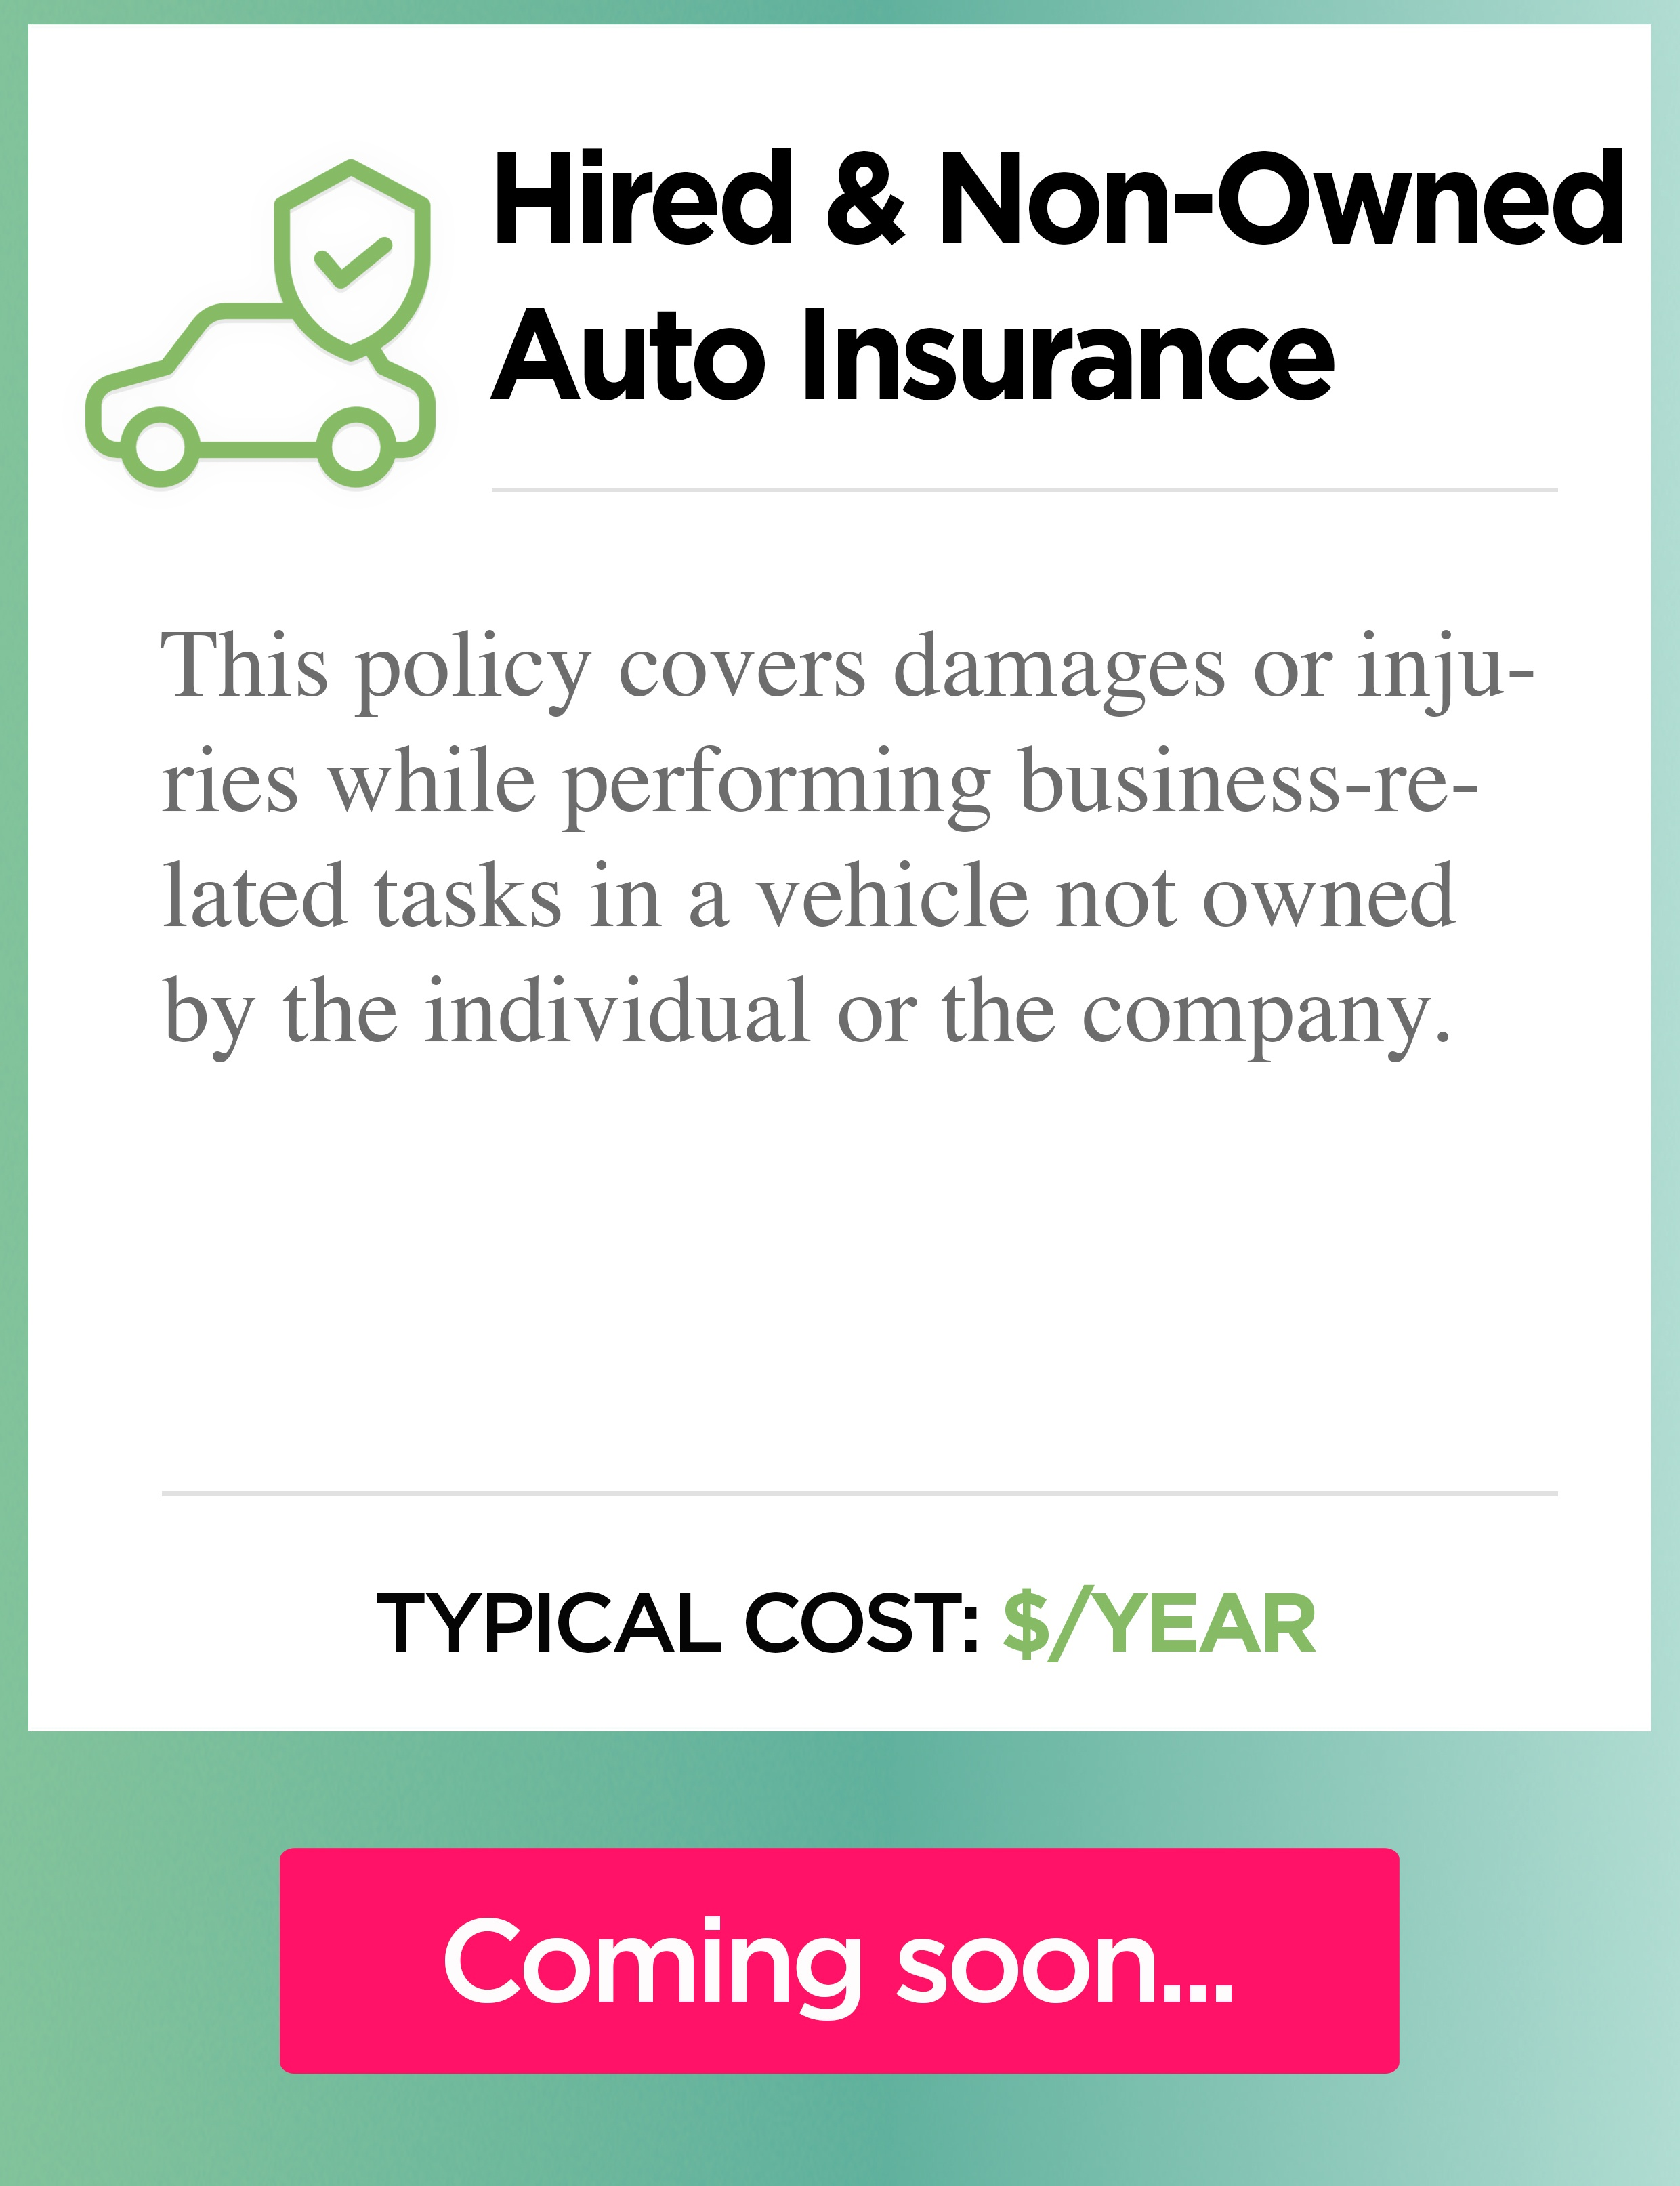 Hired auto insurance cost